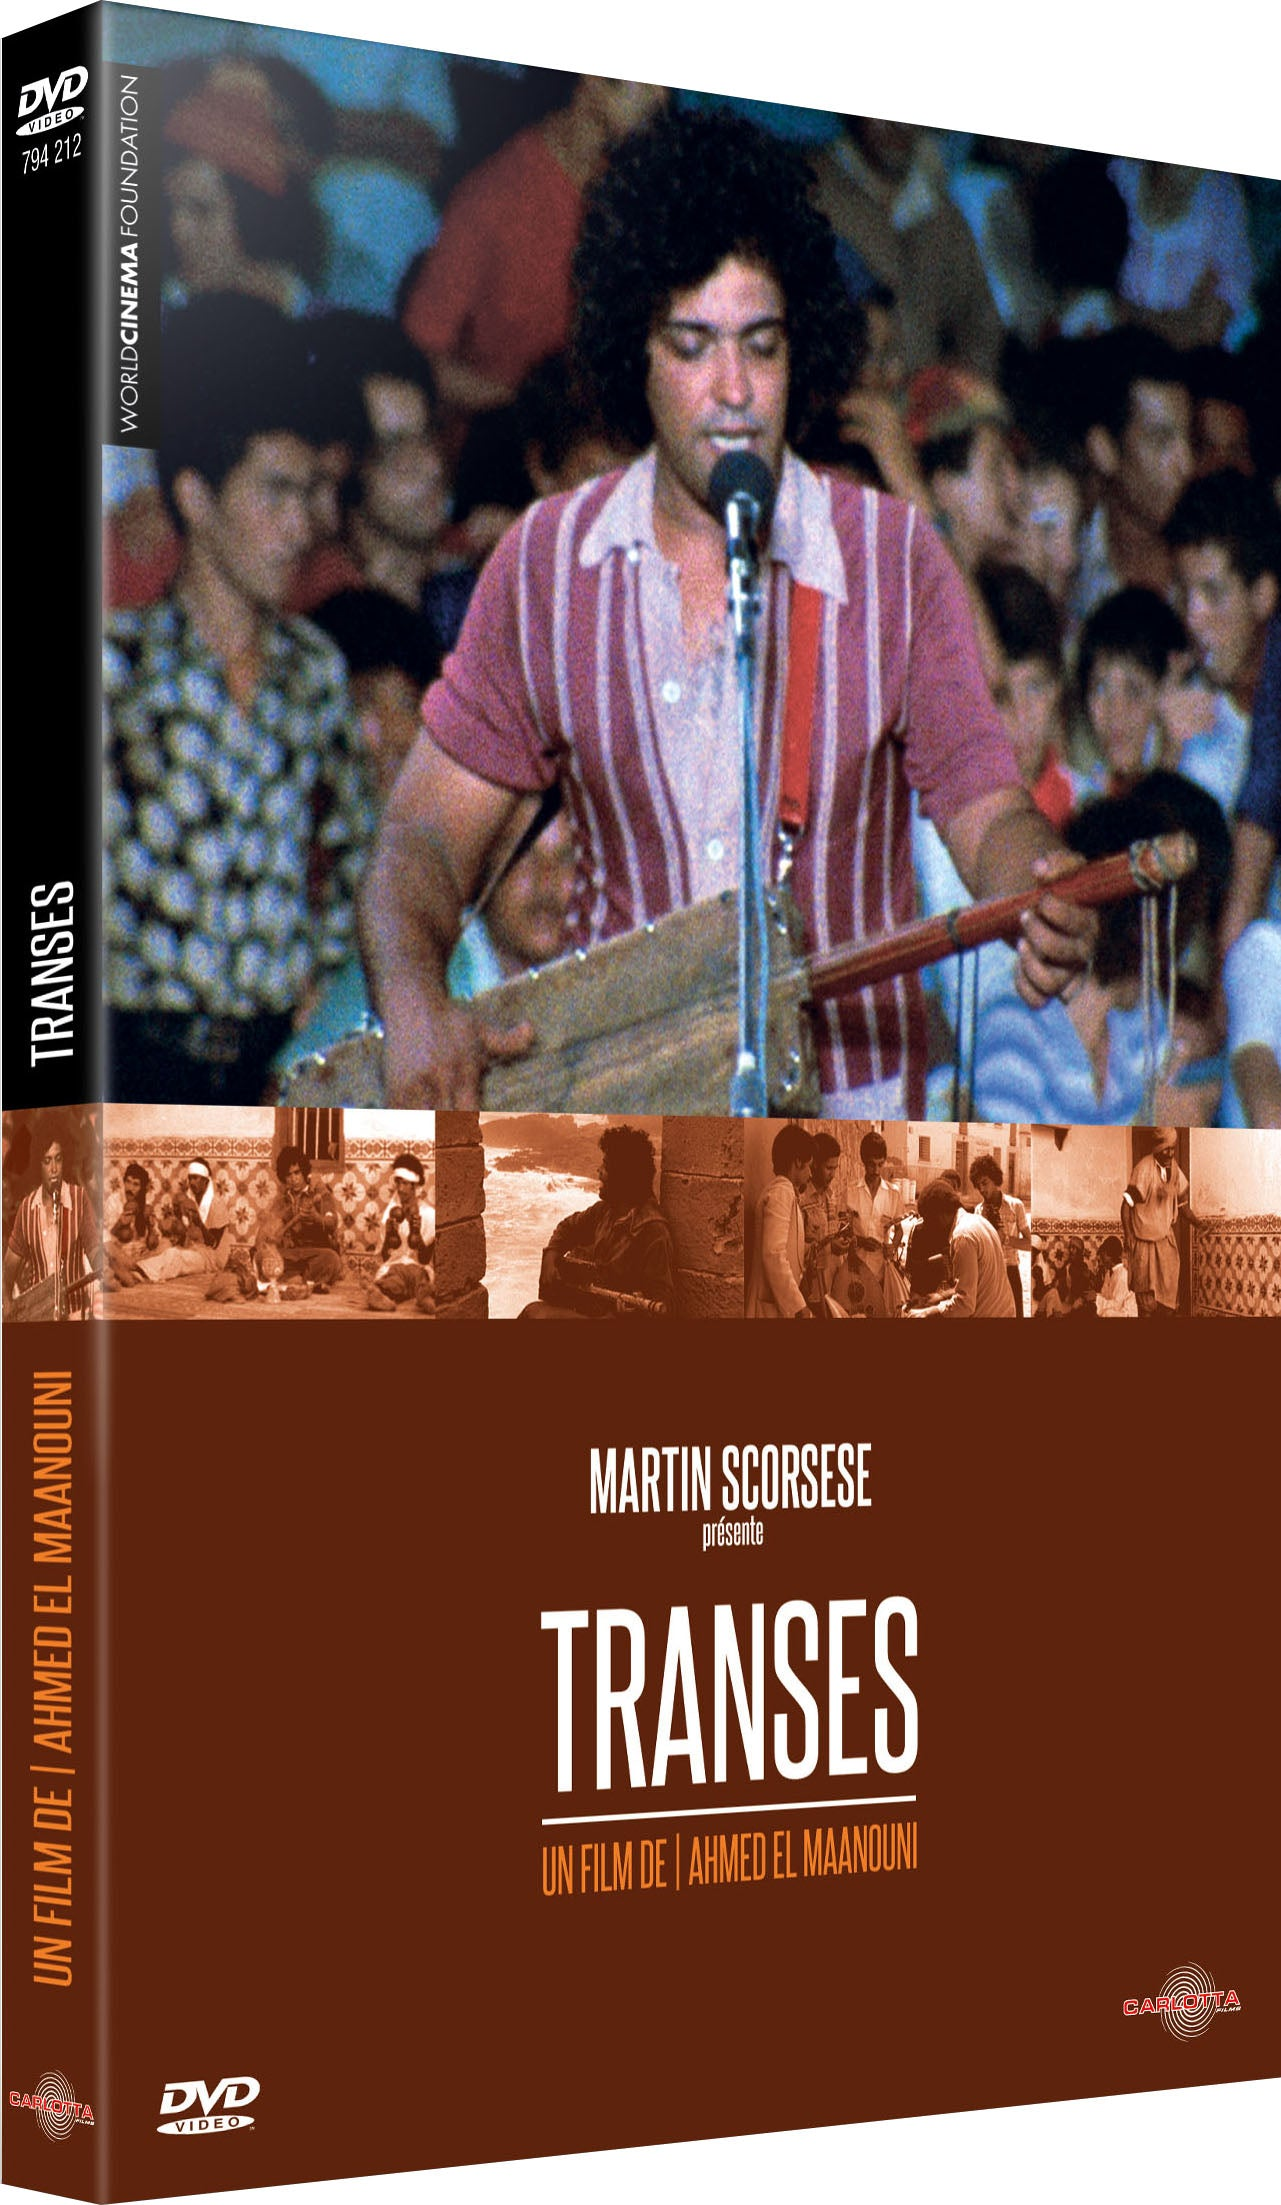 Transes d'Ahmed El Maanouni - DVD - CARLOTTA FILMS - La Boutique